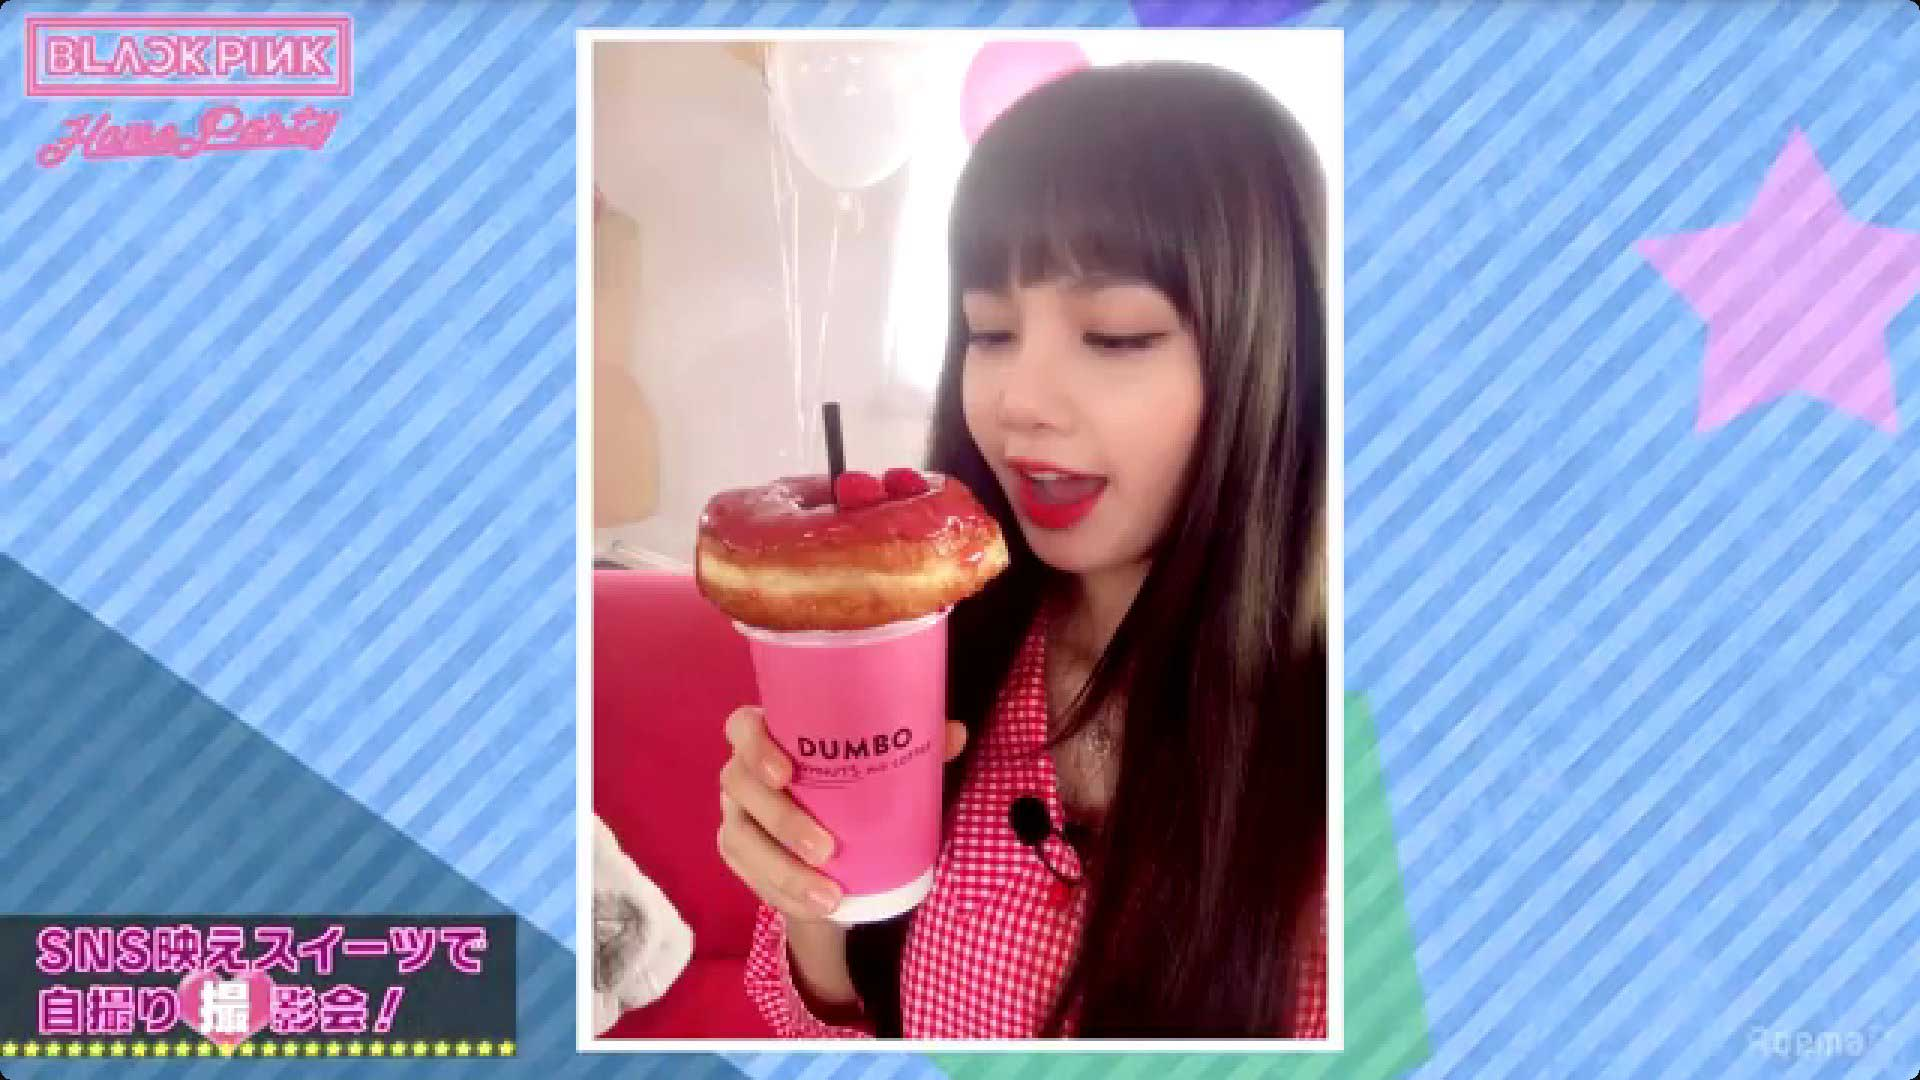 Lisa Blackpink Home Party 2018